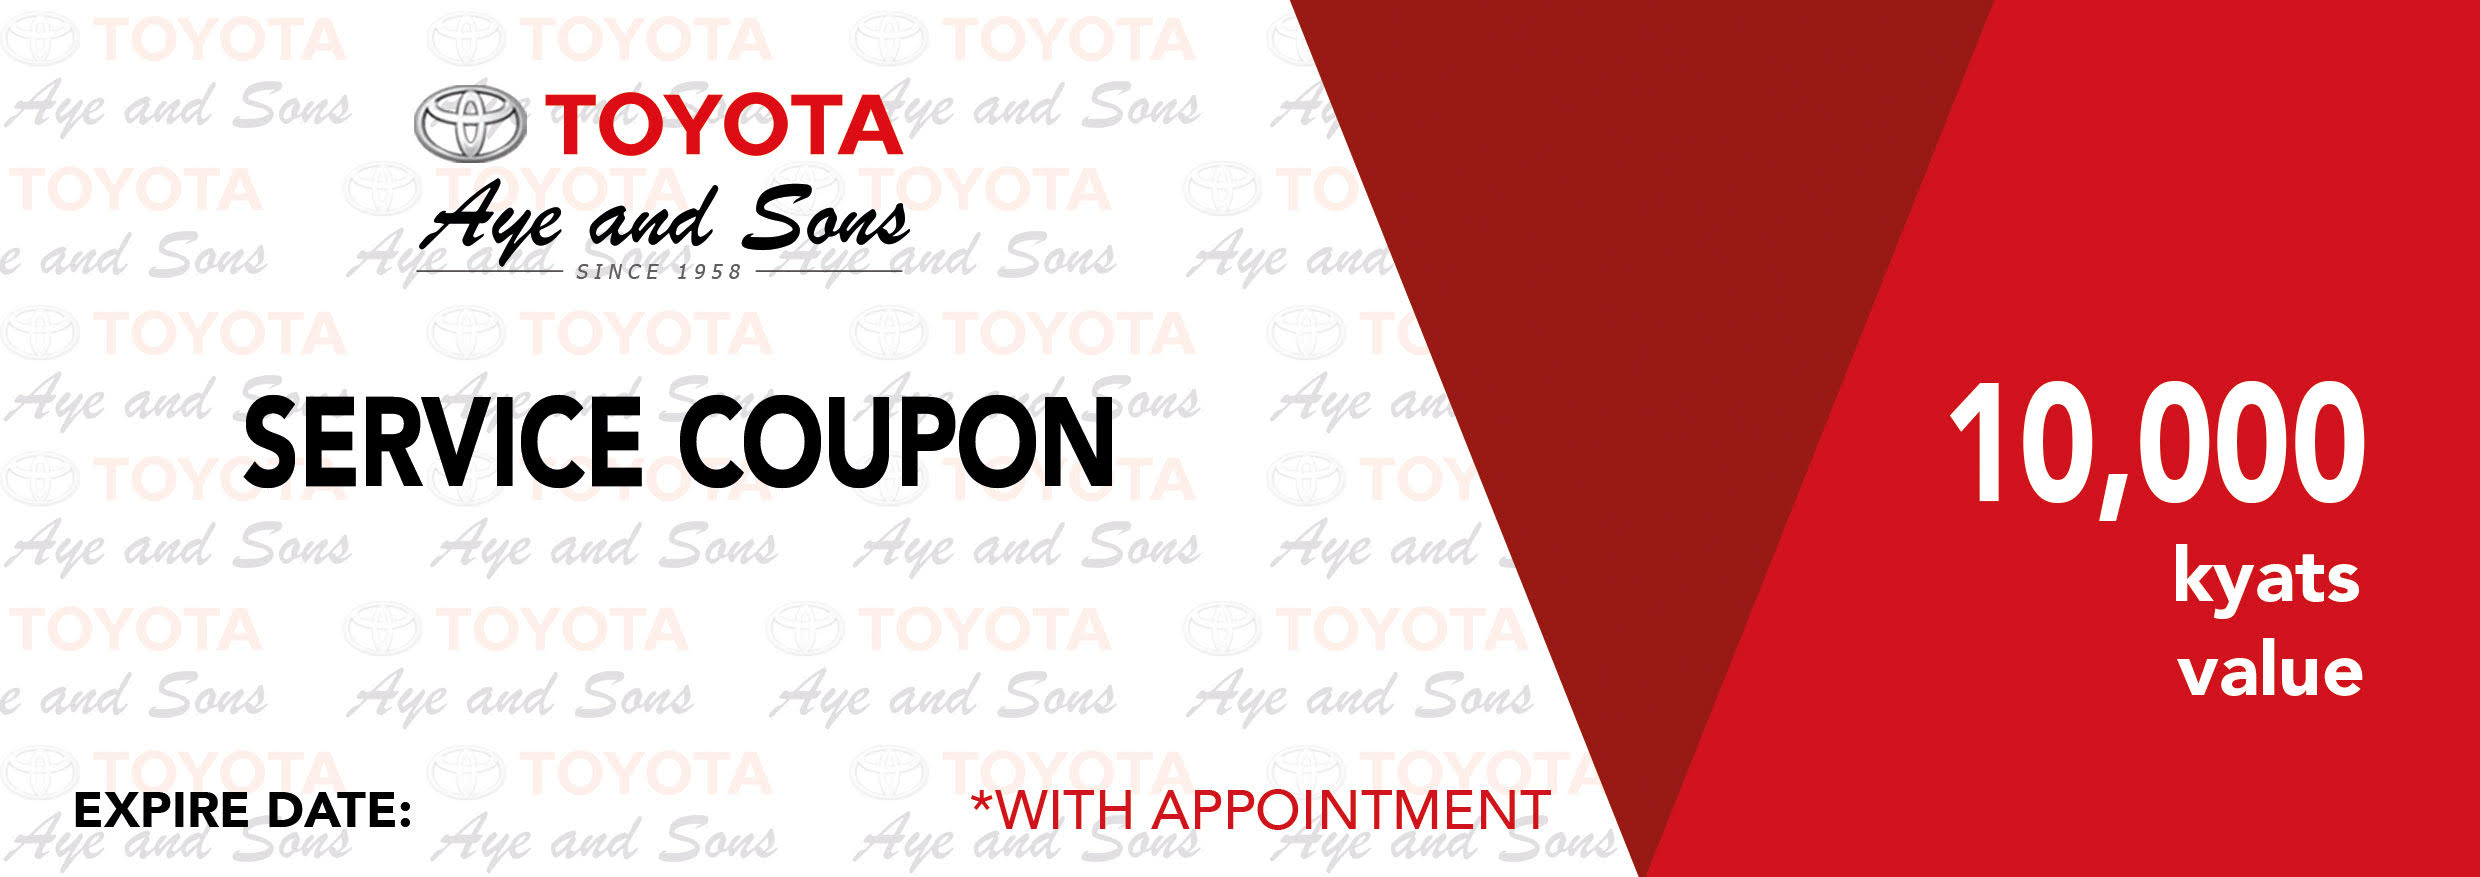 Toyota Service Appointment >> Service Appointment Promotion Toyota Aye And Sons